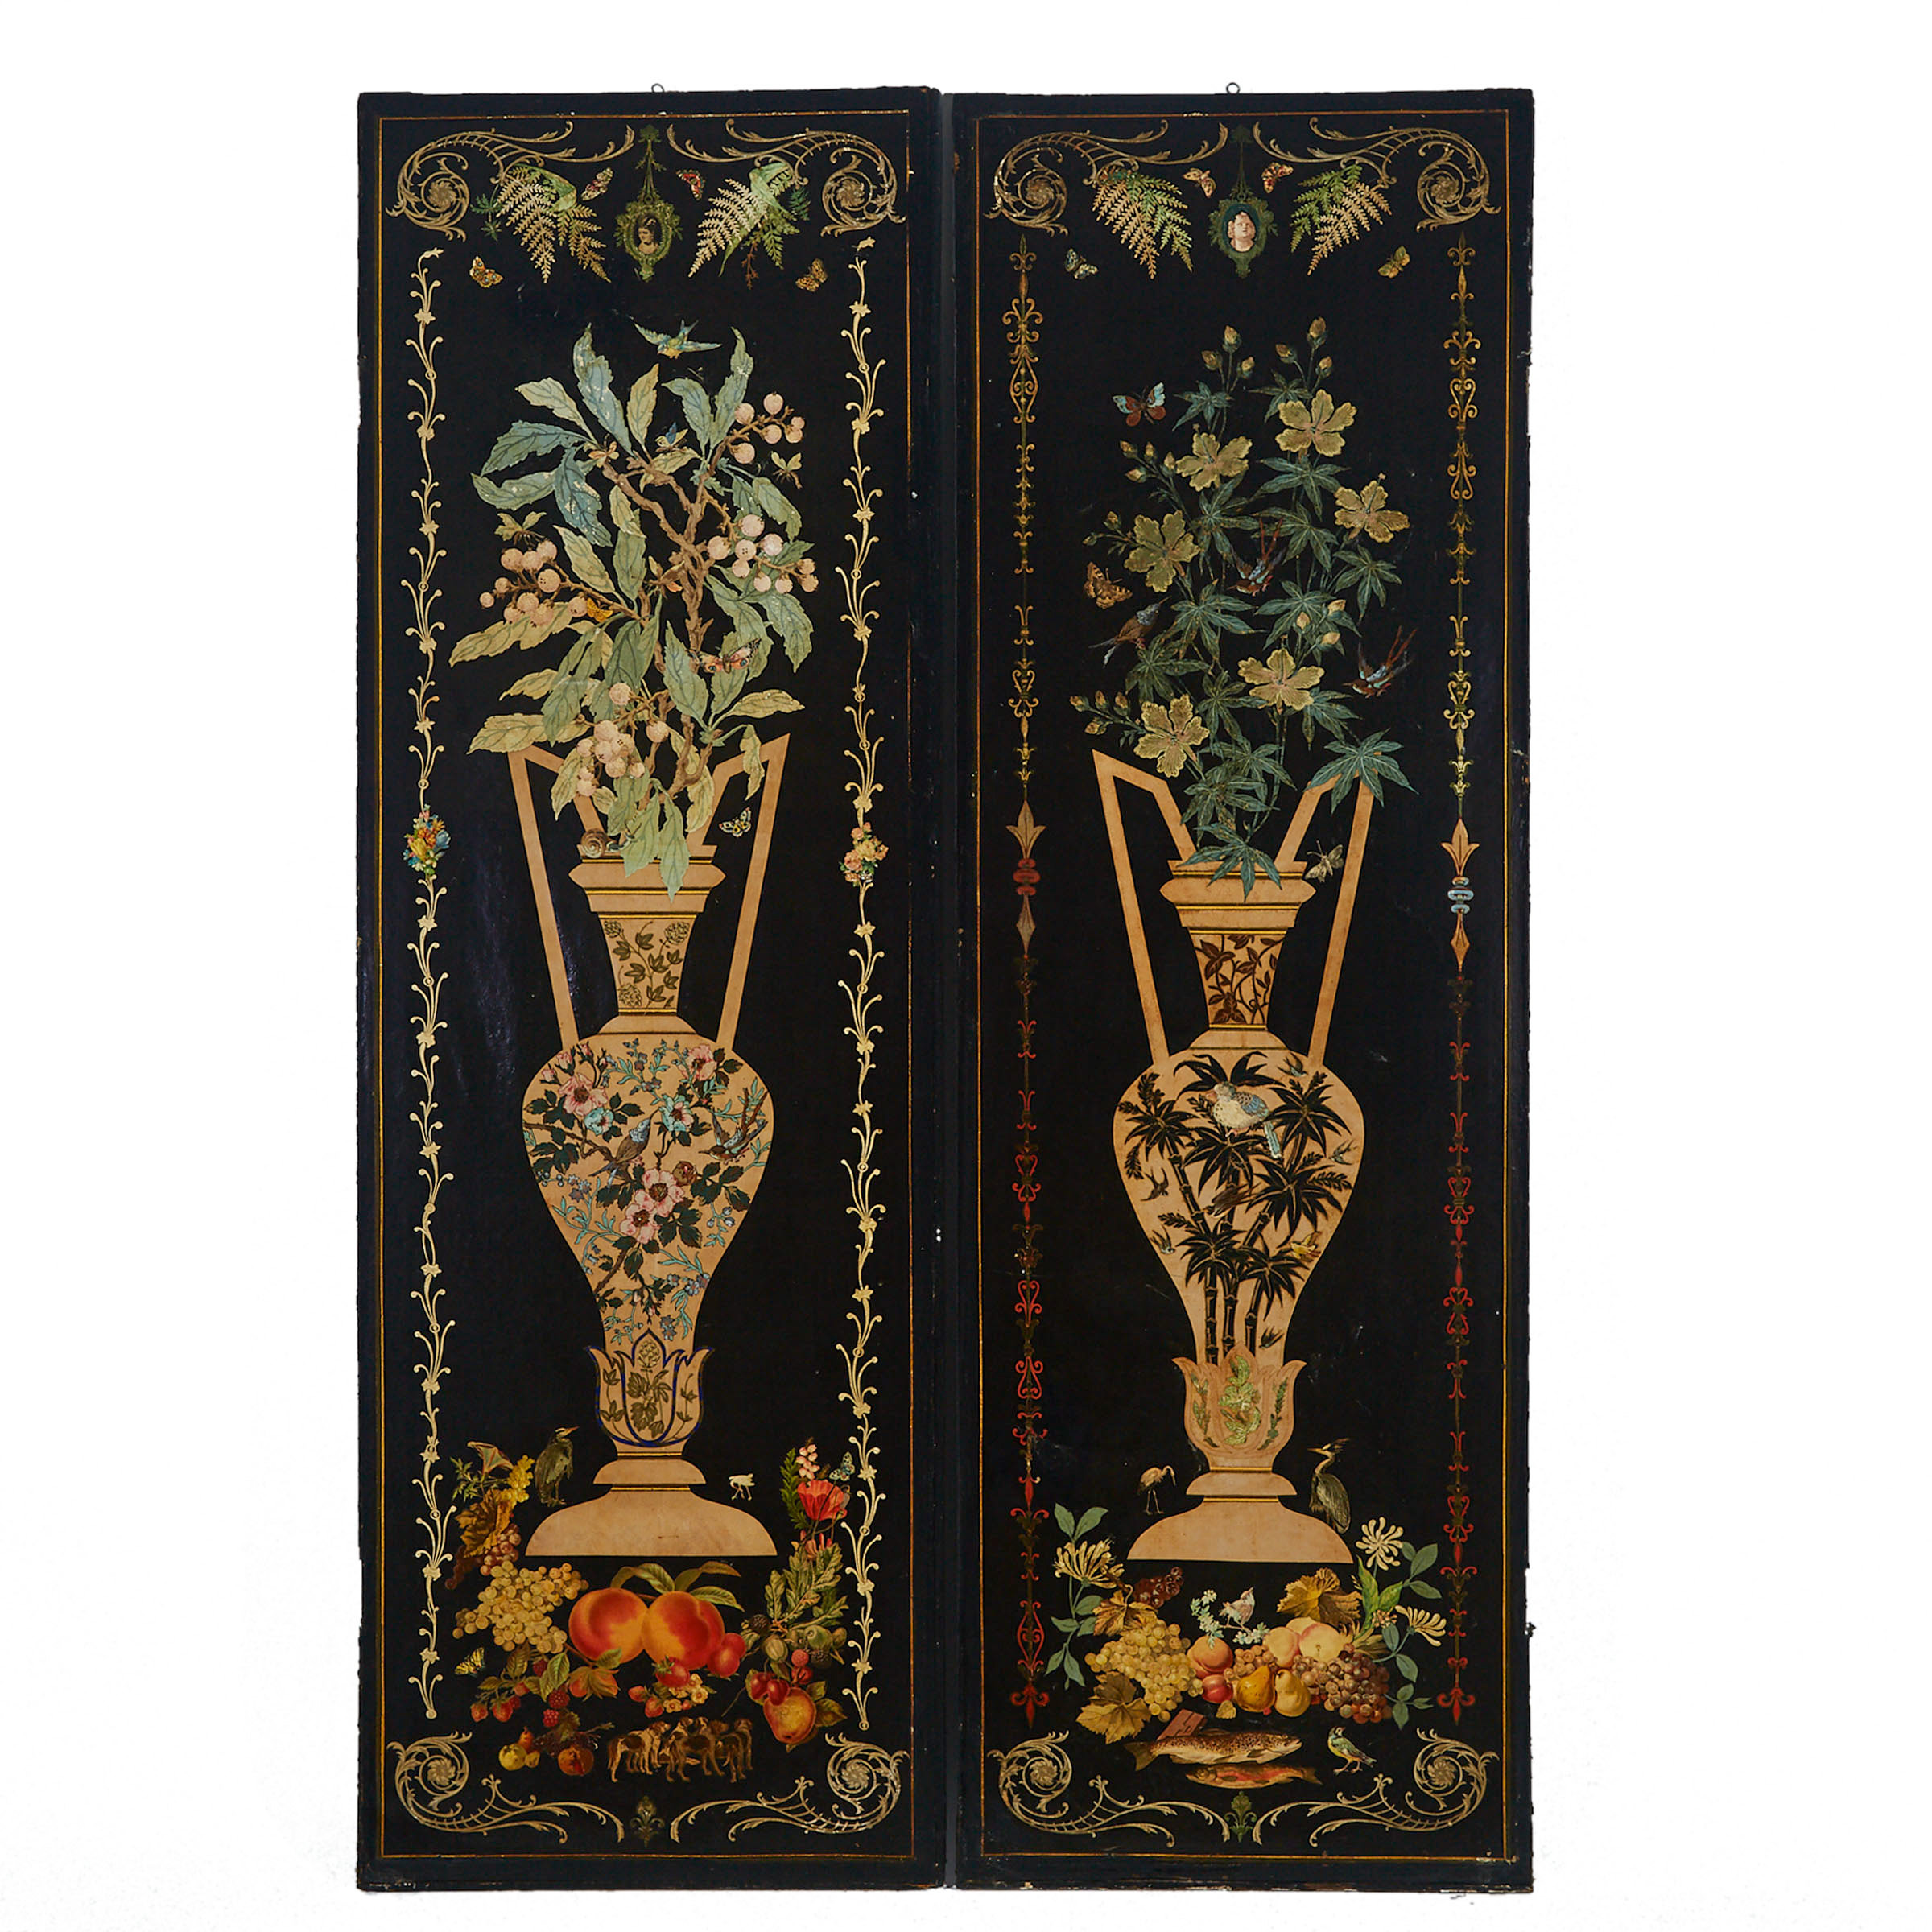 Pair of Victorian Decoupage Leather Screen Panels, 19th century